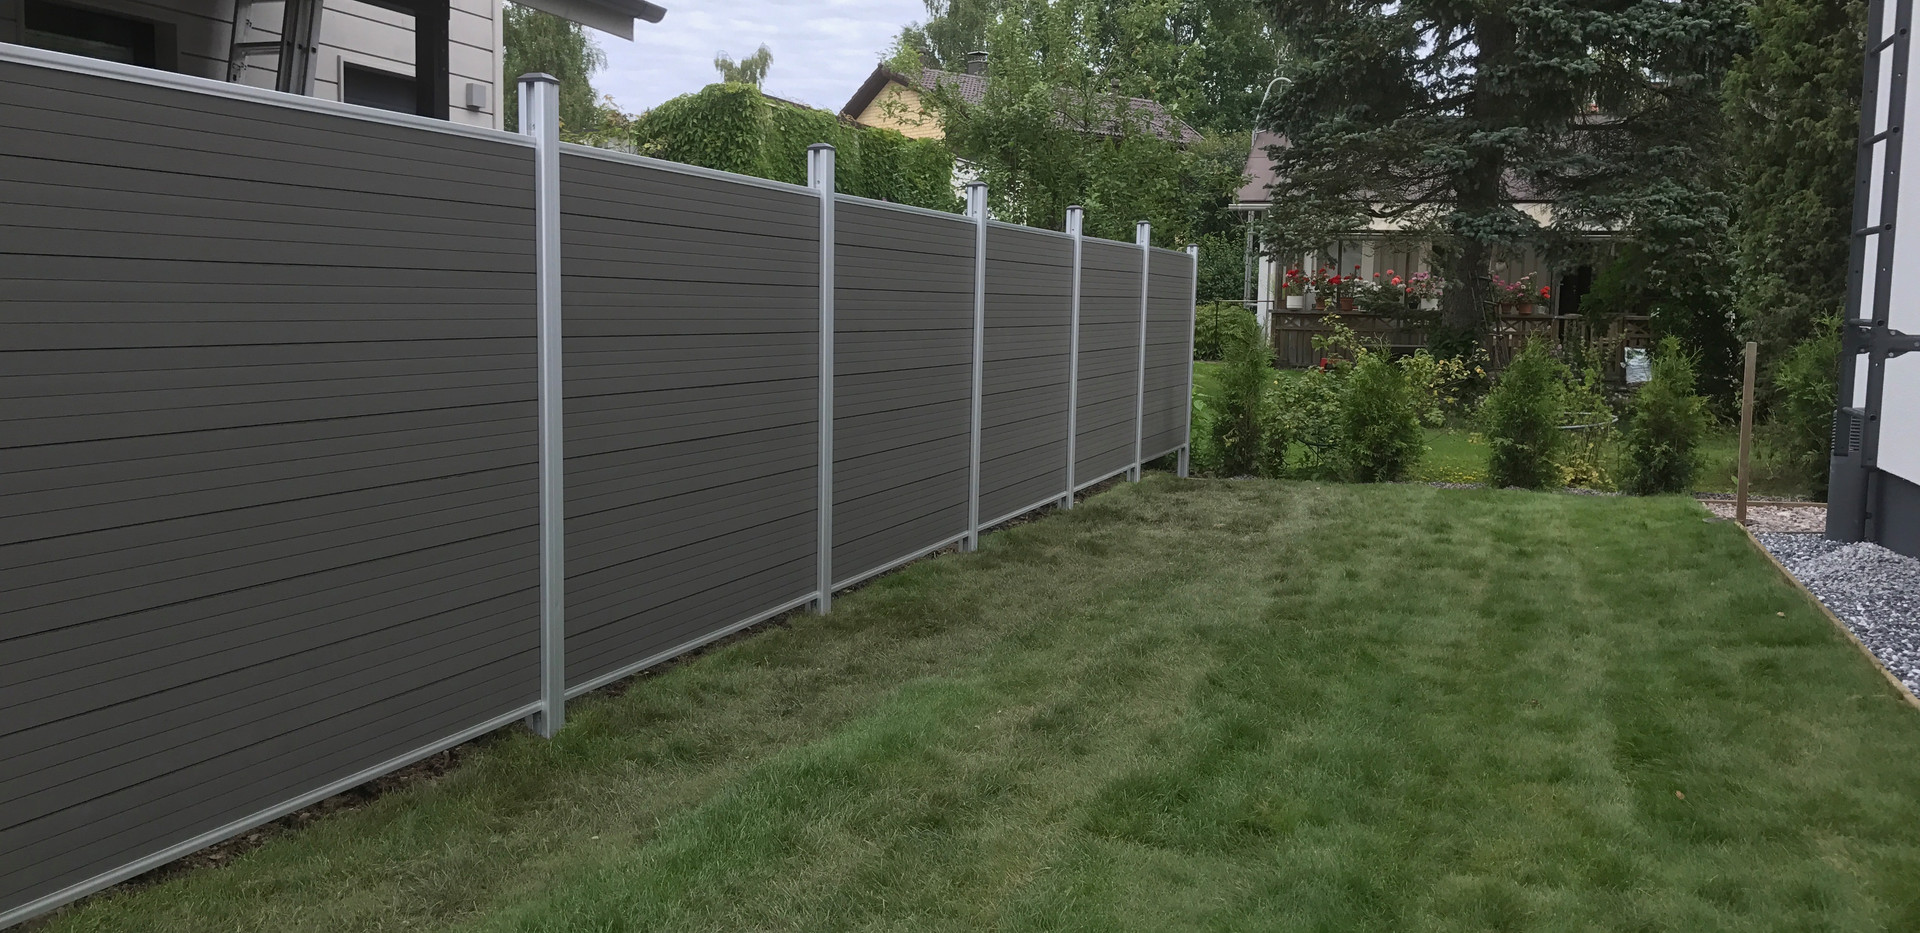 Tranditional fence project pictures (5).